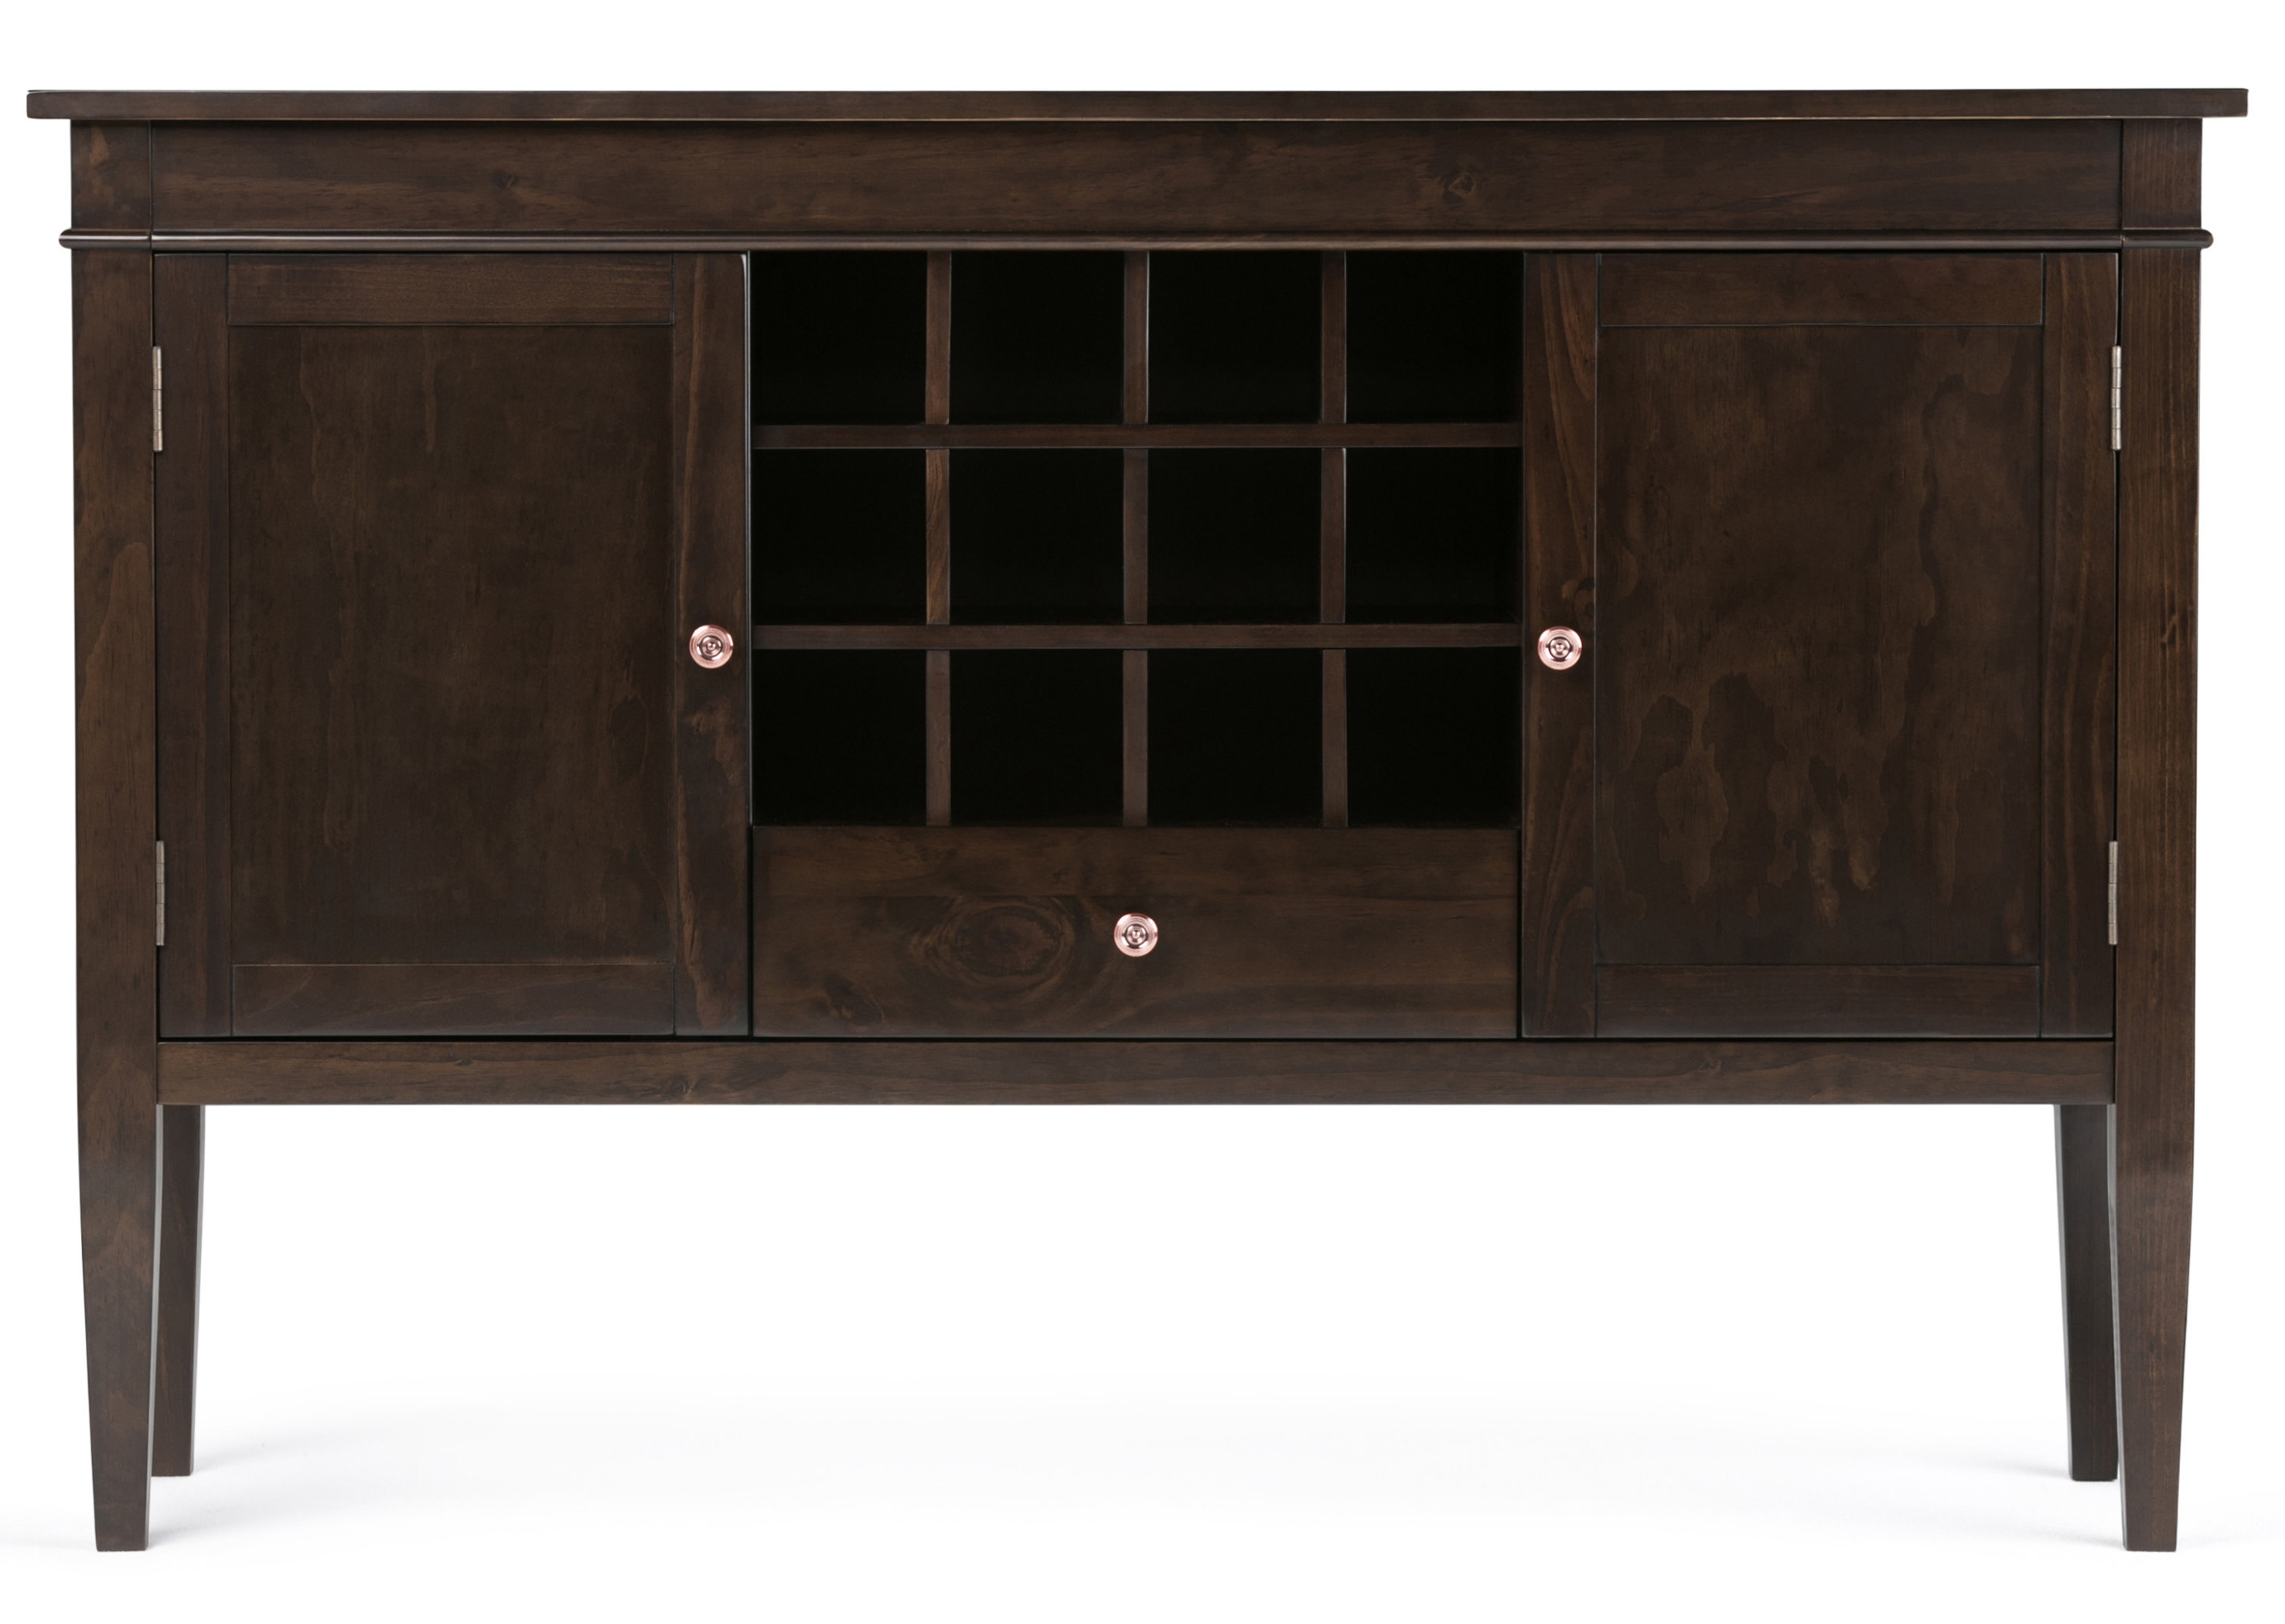 Buffet Table Wine Bottle Storage Equipped Sideboards Within Cappuccino Finished Buffets (View 4 of 20)